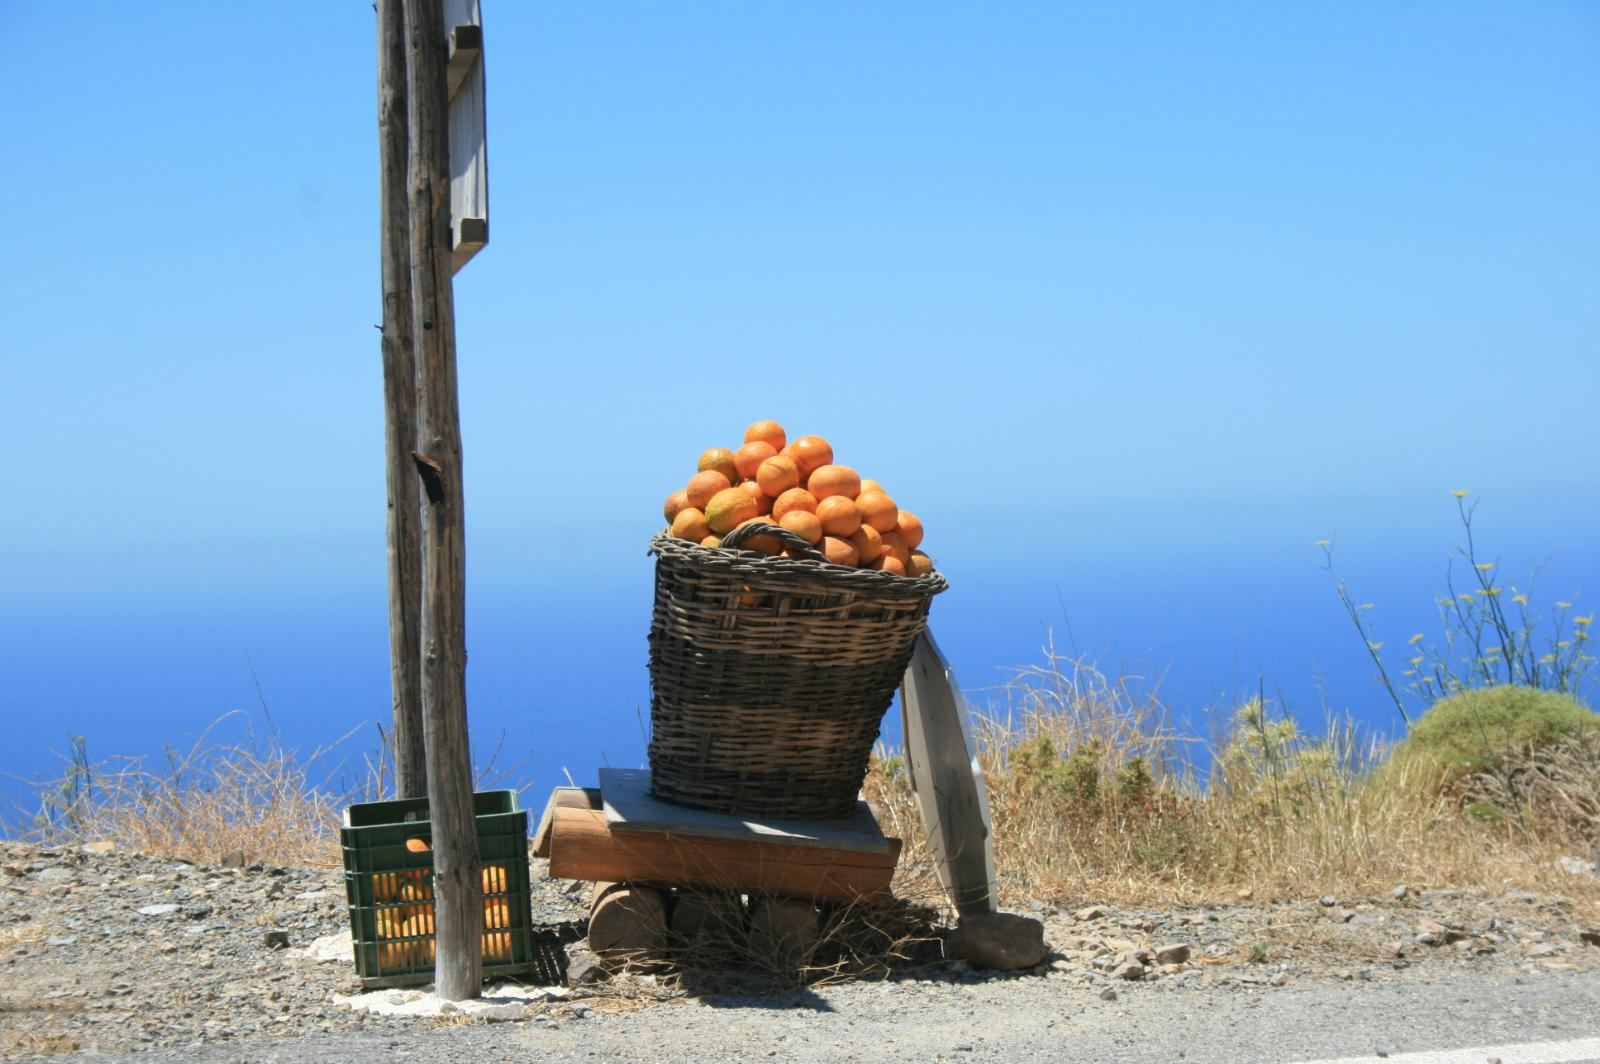 Pictures from Greece by otto leholt